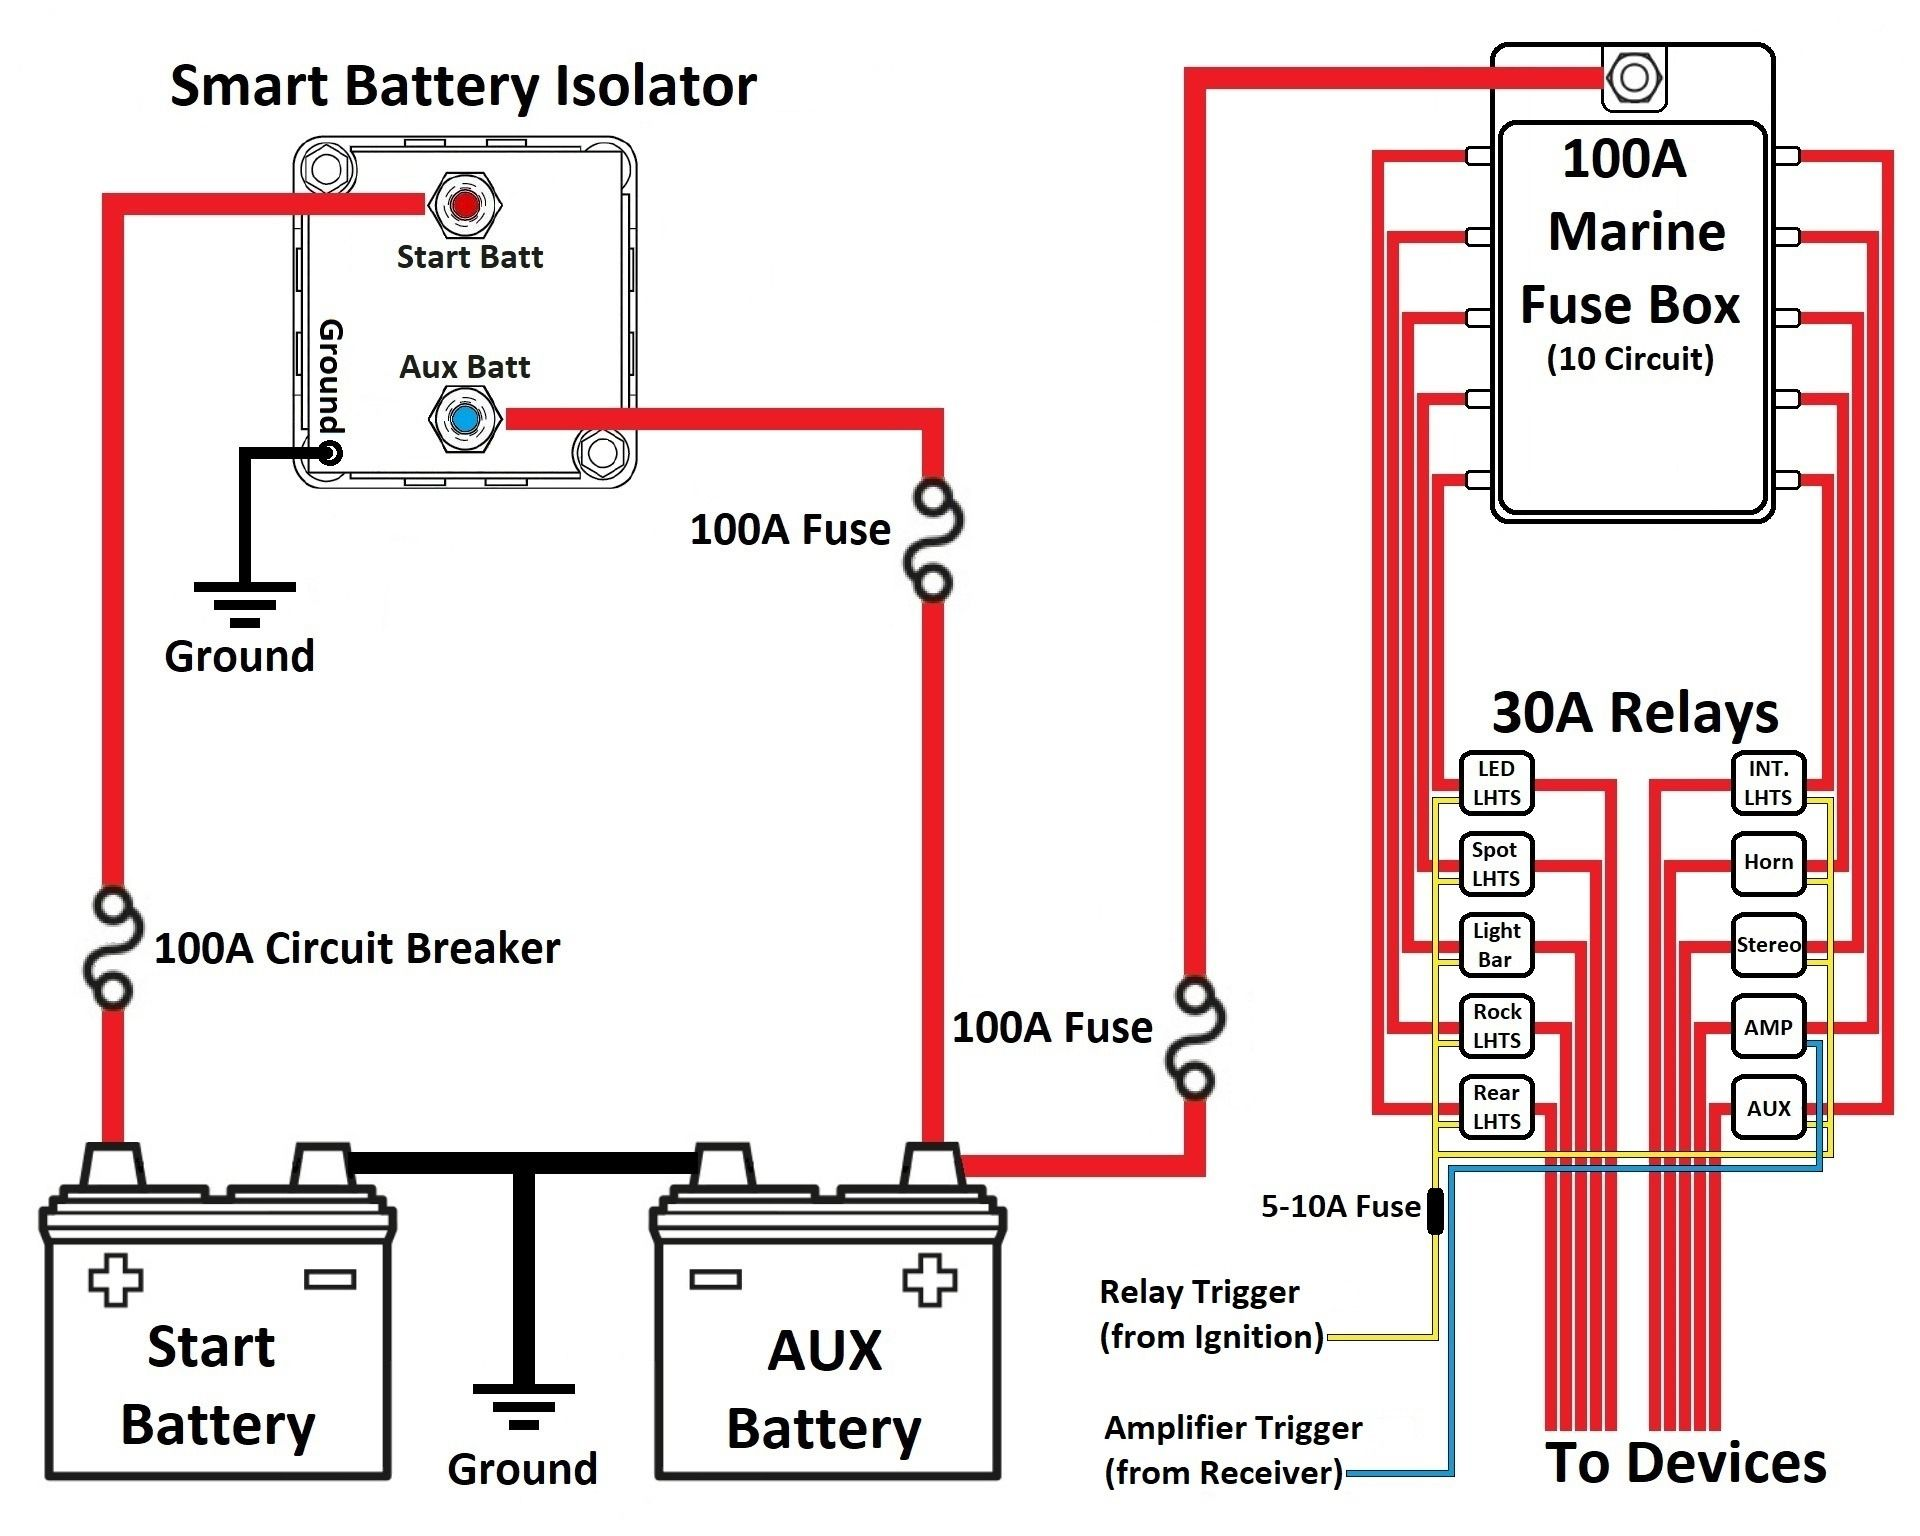 medium resolution of a battery isolator wiring diagram is a compacted conventional picture representation of a electric circuit it shows that the components of the circuit as